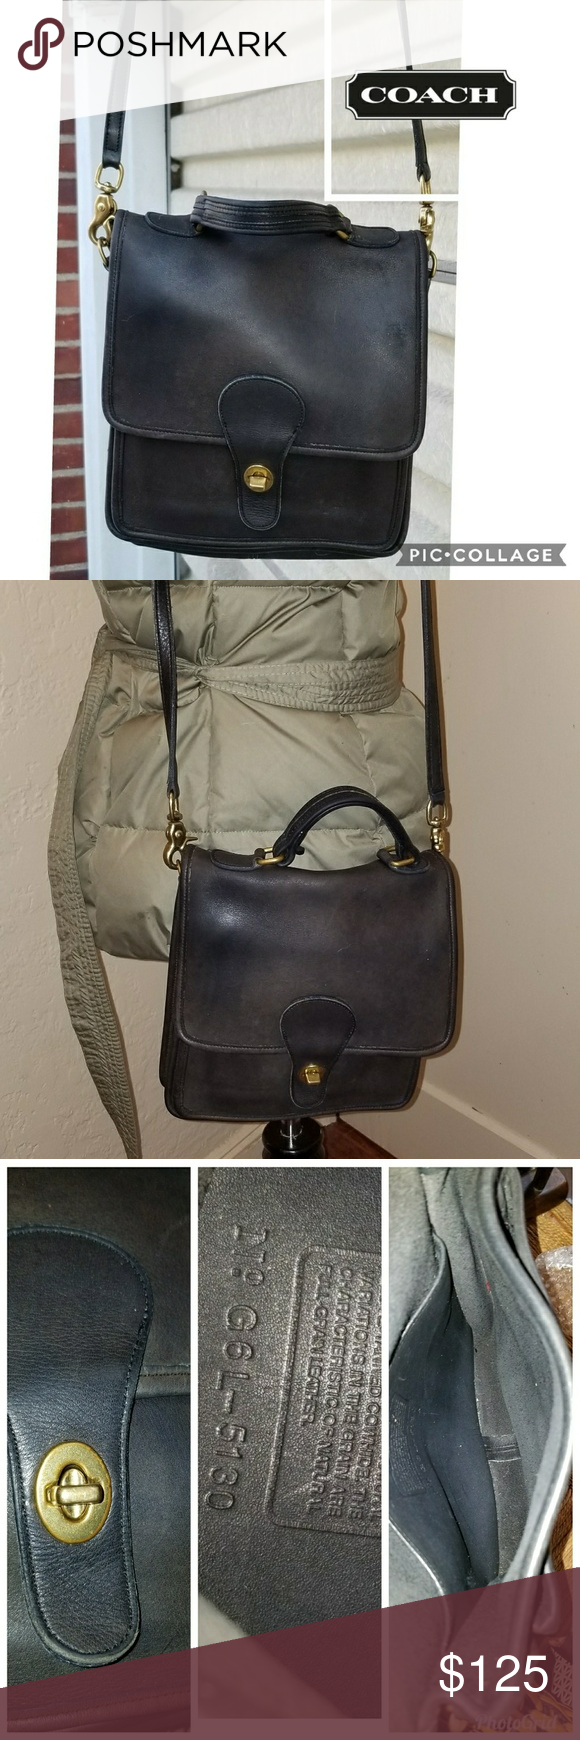 Vintage Coach station bag Great piece. I have cleaned and condition this bag.  It is guaranteed authentic and the creed is shown. 04d189d0f7